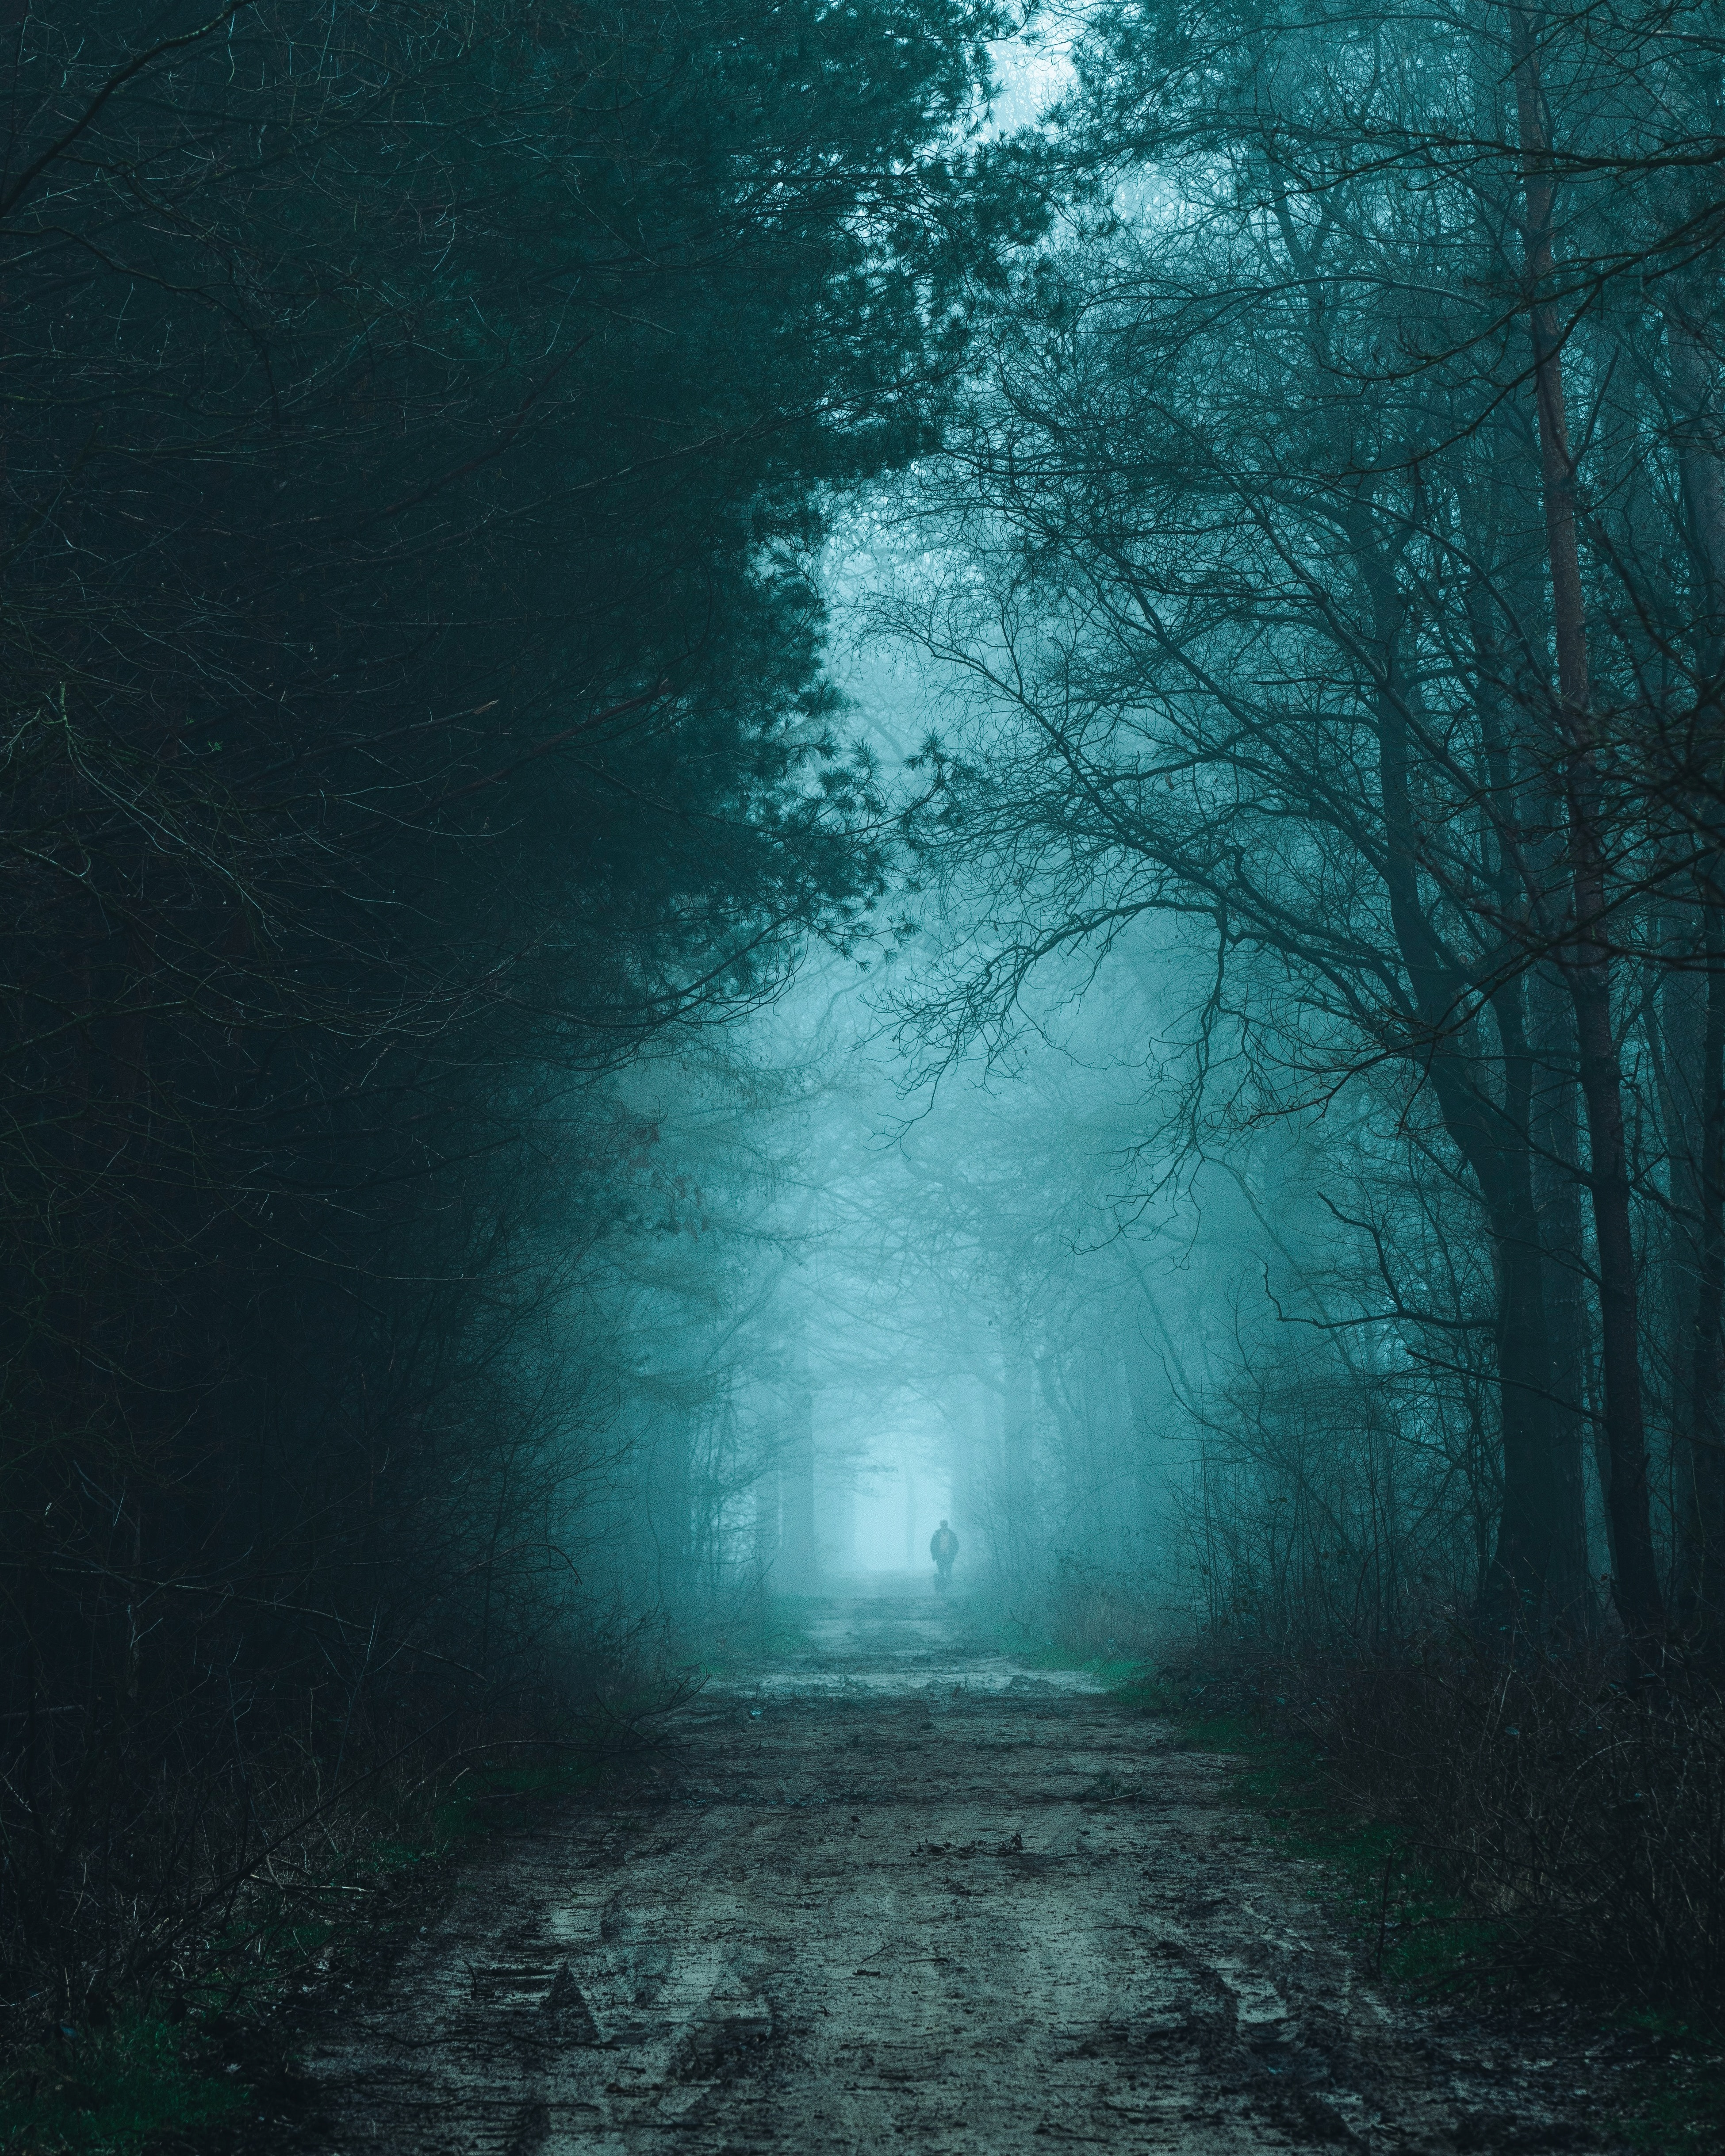 129497 download wallpaper Nature, Silhouette, Road, Forest, Fog, Darkness screensavers and pictures for free